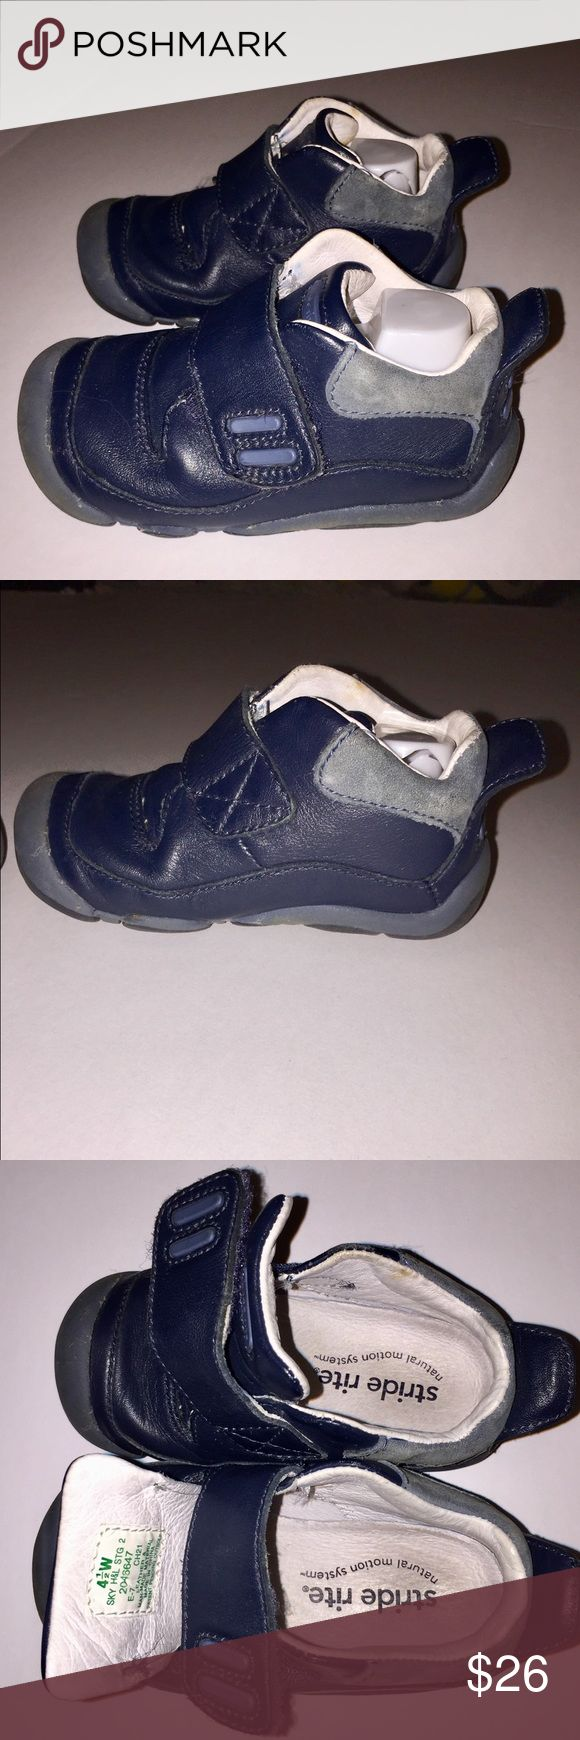 Top 25 ideas about Wide Toddler Shoes on Pinterest | Baby shoes ...